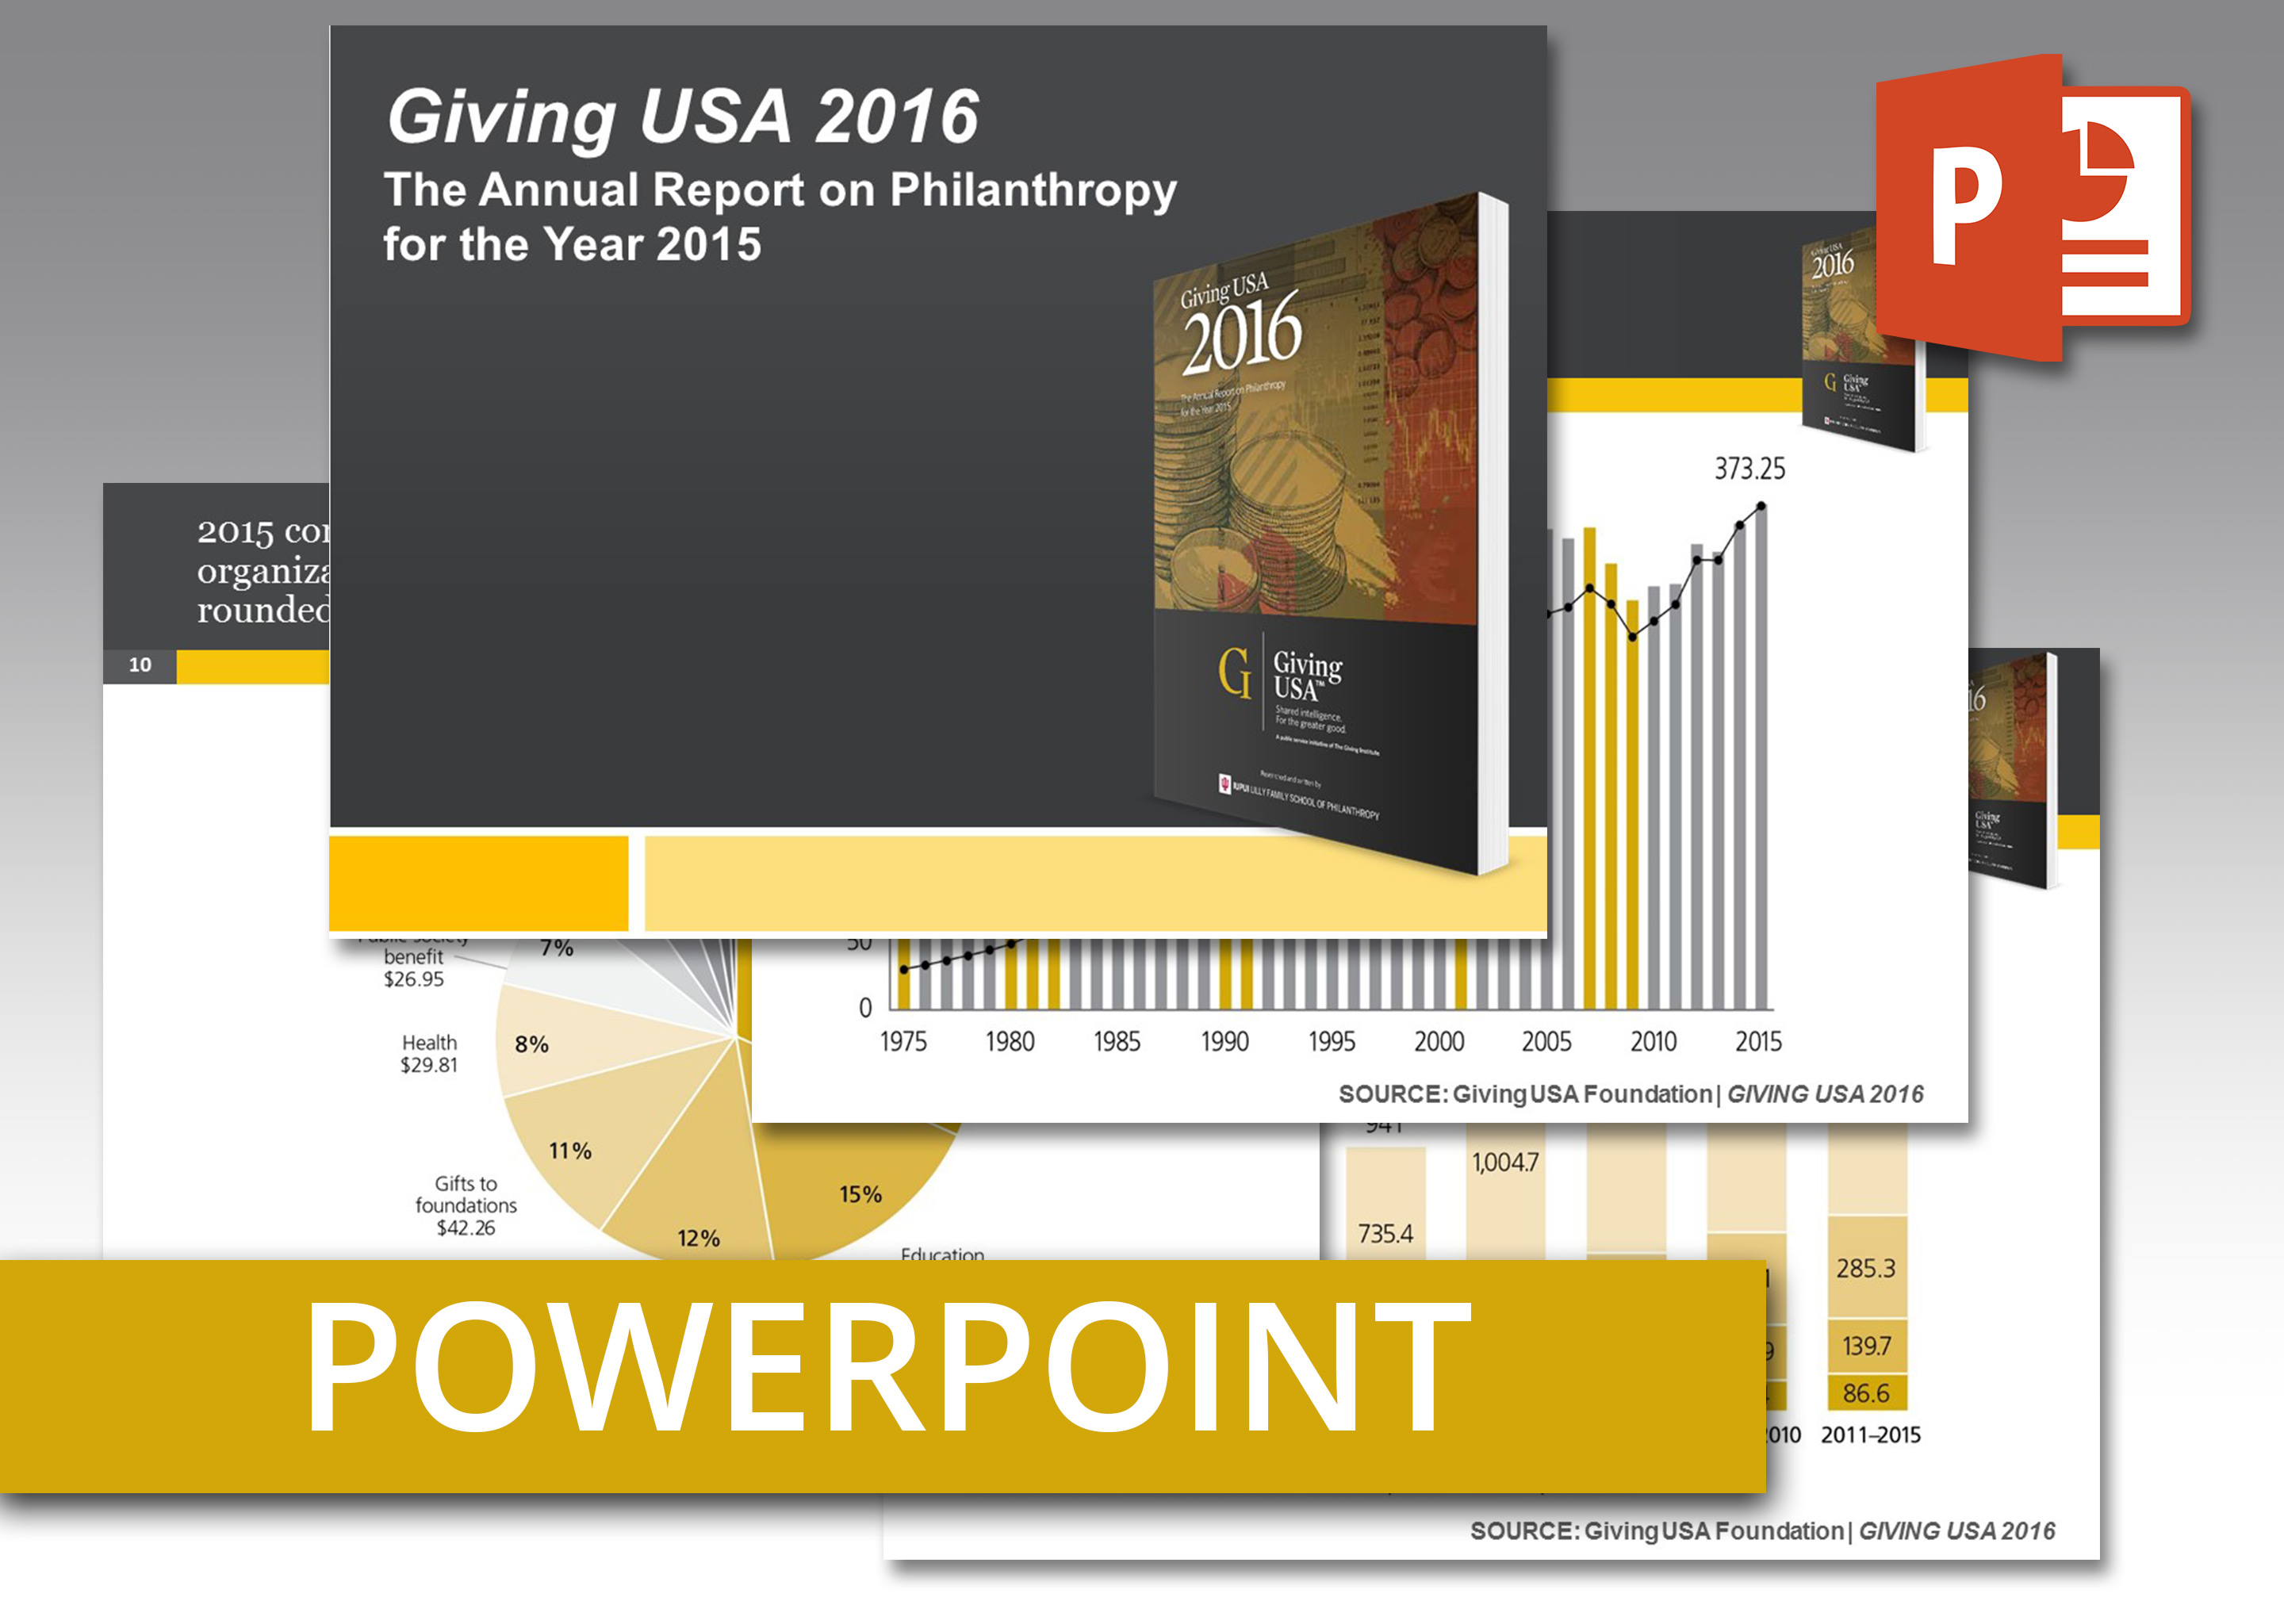 Coolmathgamesus  Unique Giving Usa  Powerpoint An Easytouse Presentation Of Report  With Handsome Giving Usa  Powerpoint An Easytouse Presentation Of Report Findings Including Talking Points With Cute Moving Powerpoint Background Also Powerpoint Games For The Classroom In Addition Symbolism In Literature Powerpoint And Powerpoint Templates Computer Theme As Well As Download Powerpoint  Additionally Microsoft Powerpoint  Setup Free Download From Givingusaorg With Coolmathgamesus  Handsome Giving Usa  Powerpoint An Easytouse Presentation Of Report  With Cute Giving Usa  Powerpoint An Easytouse Presentation Of Report Findings Including Talking Points And Unique Moving Powerpoint Background Also Powerpoint Games For The Classroom In Addition Symbolism In Literature Powerpoint From Givingusaorg